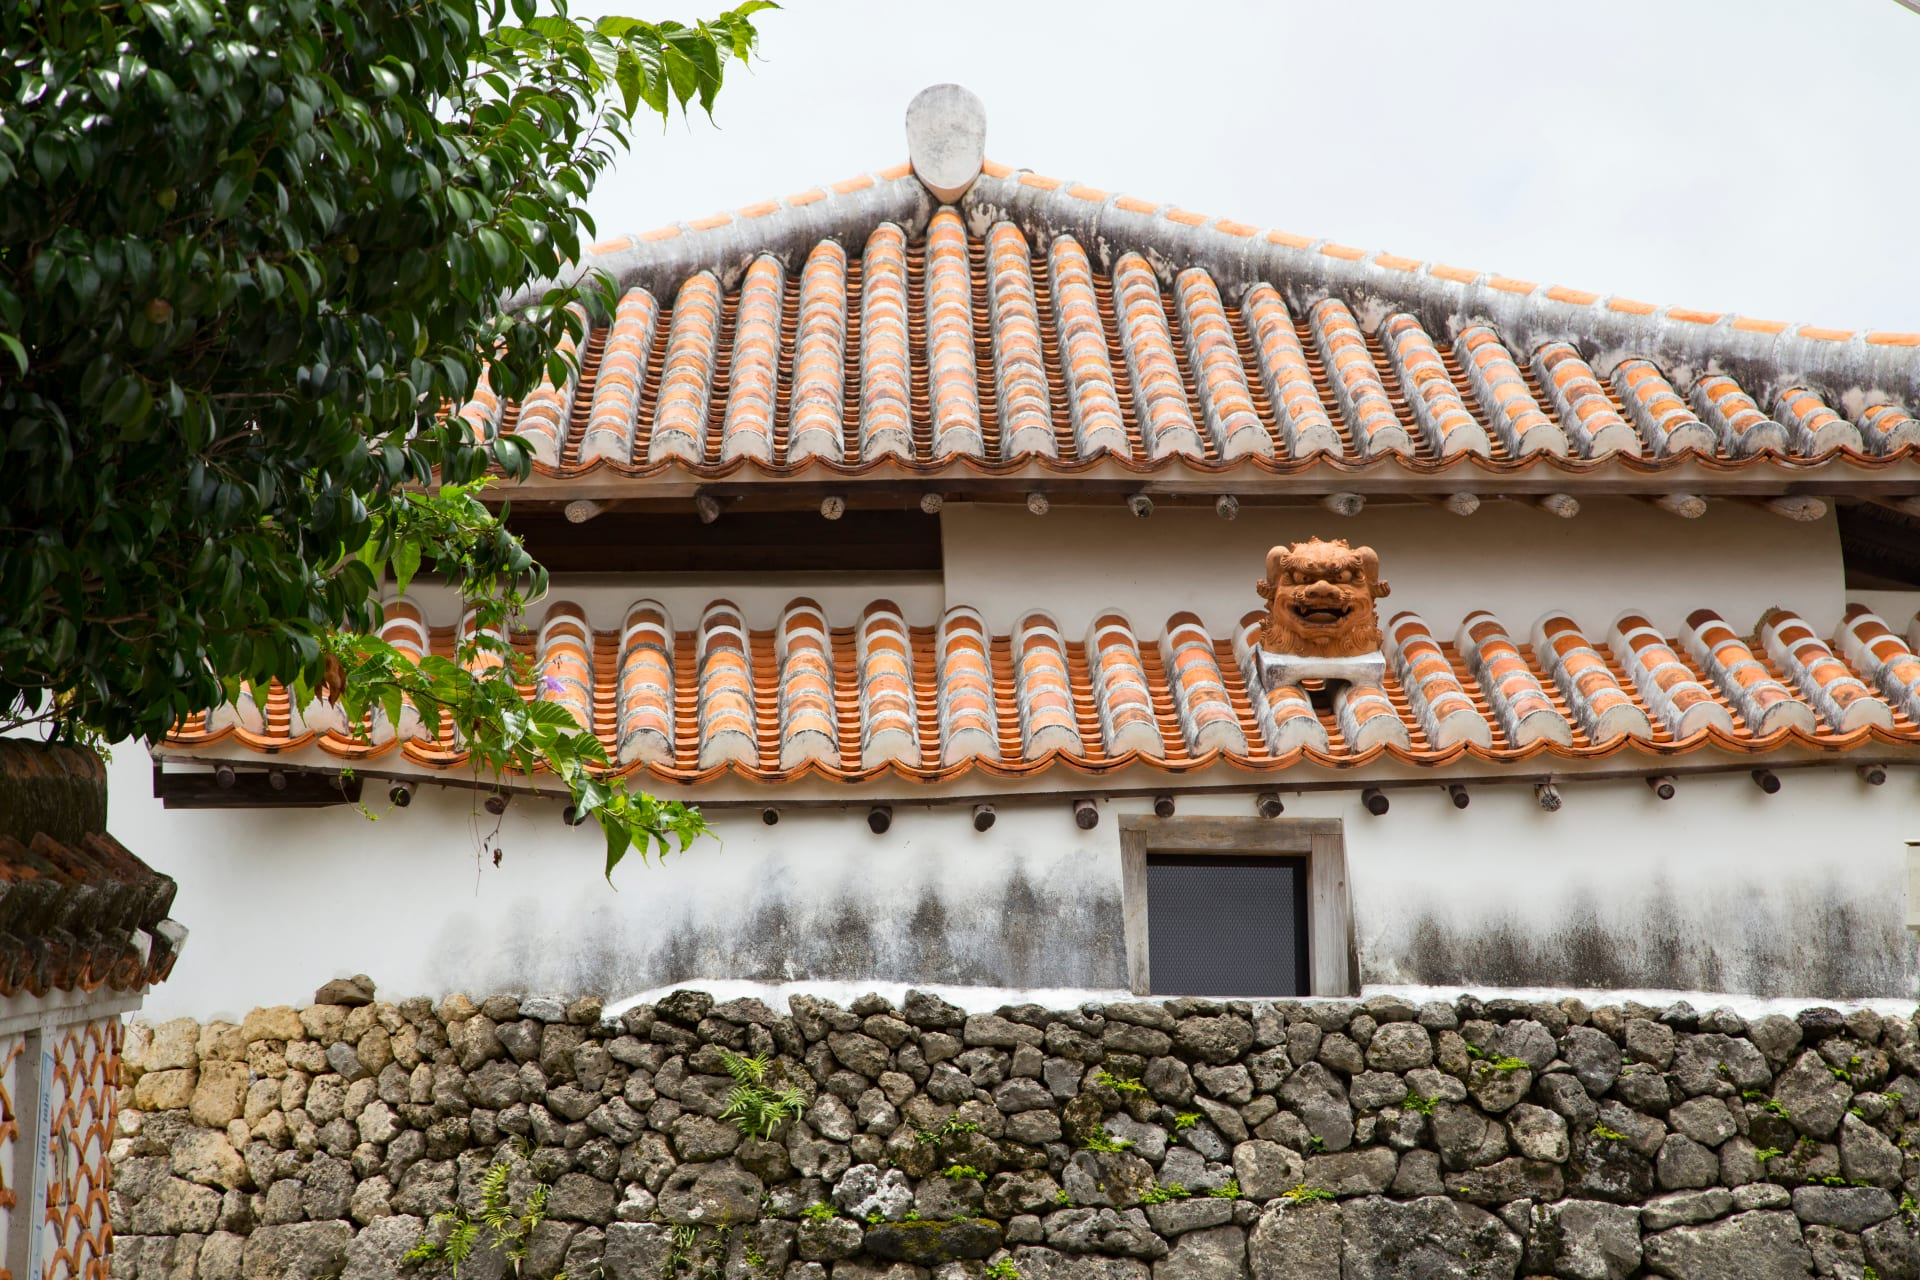 Okinawa - Exploring the Pottery District